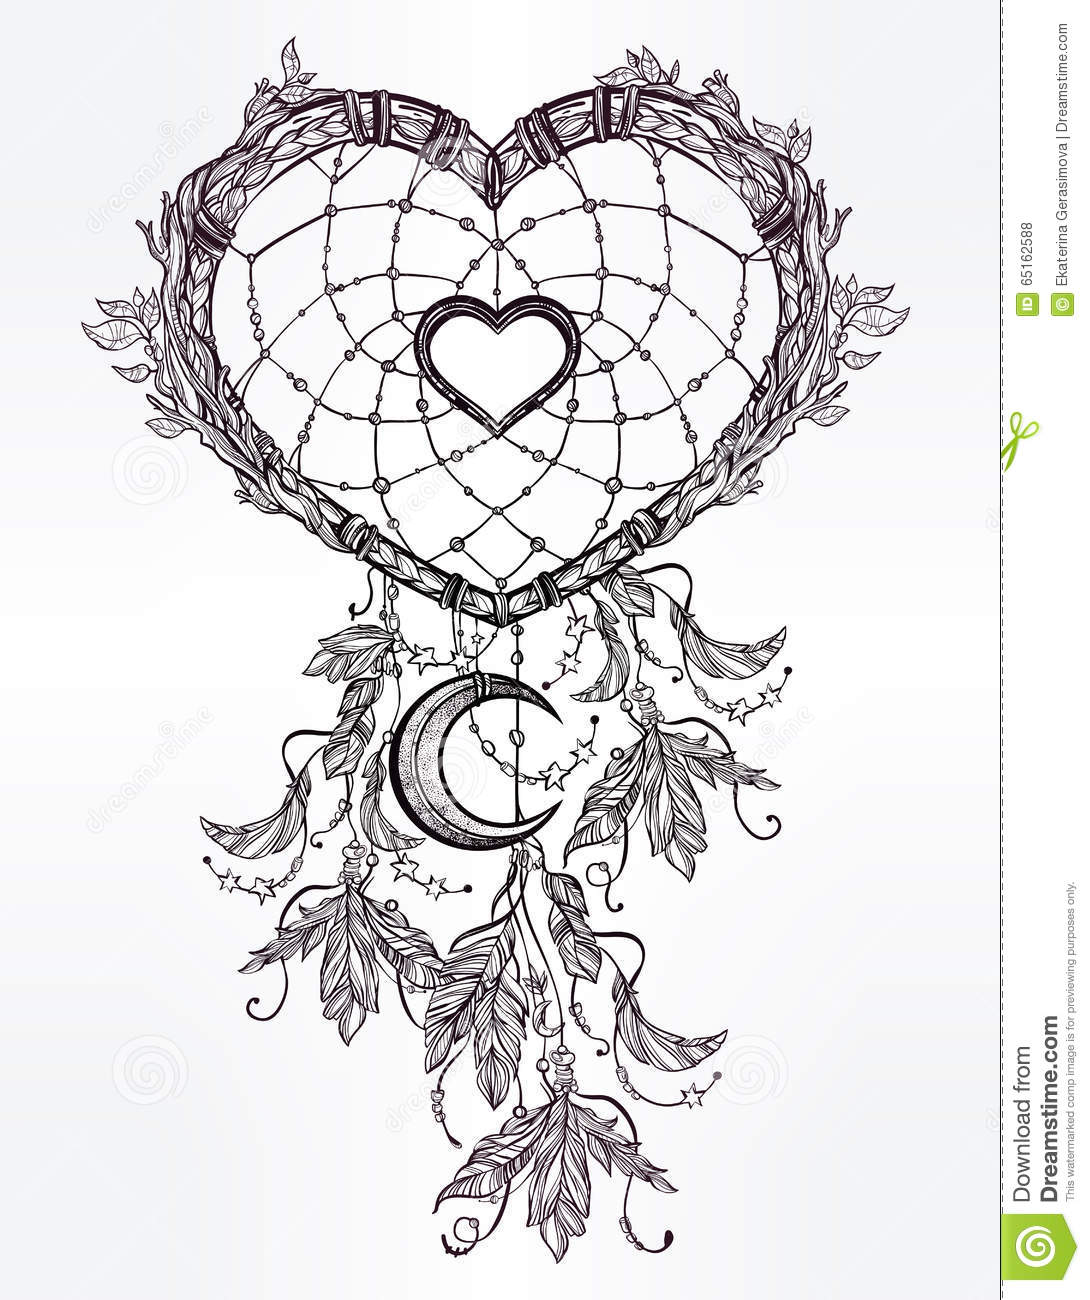 heart shaped dream catcher moon hand drawn romantic drawing feathers vector illustration ethnic tattoo design 65162588 also with printable boho coloring pages 1 on printable boho coloring pages besides printable boho coloring pages 2 on printable boho coloring pages also with printable boho coloring pages 3 on printable boho coloring pages also printable boho coloring pages 4 on printable boho coloring pages